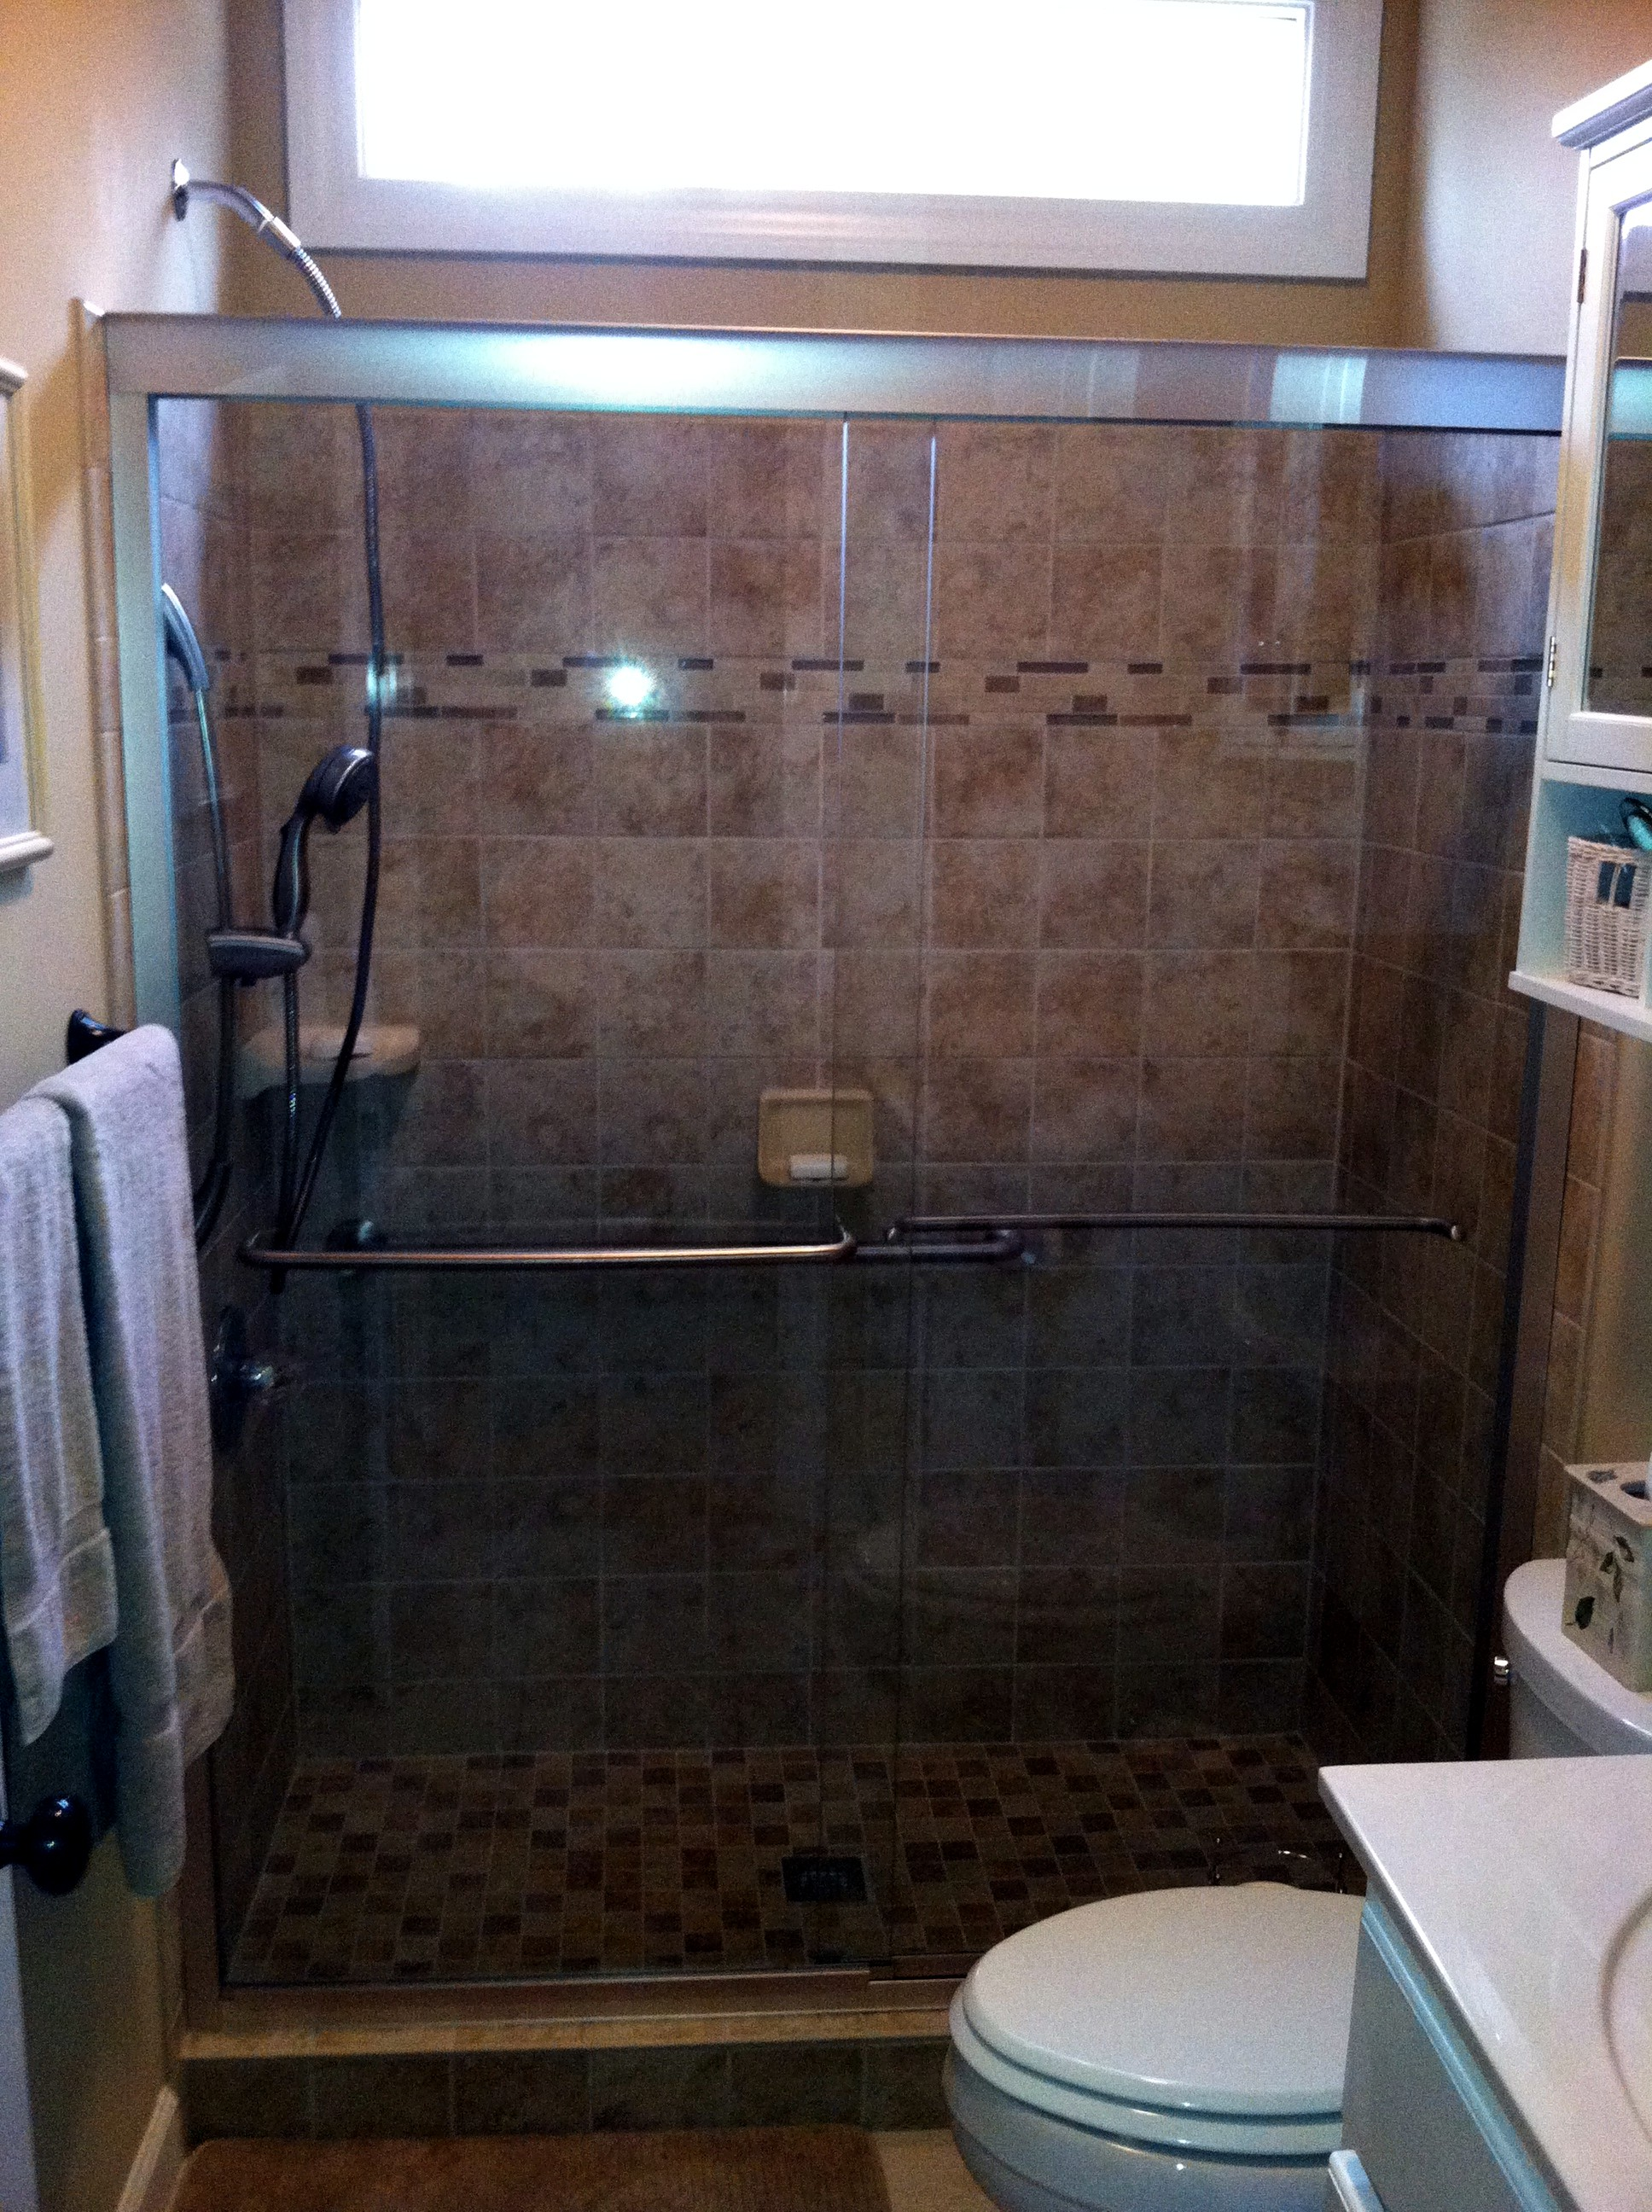 Ellijay, Blueridge, Blairesville, Jasper – Handicap Tub or Shower Conversion